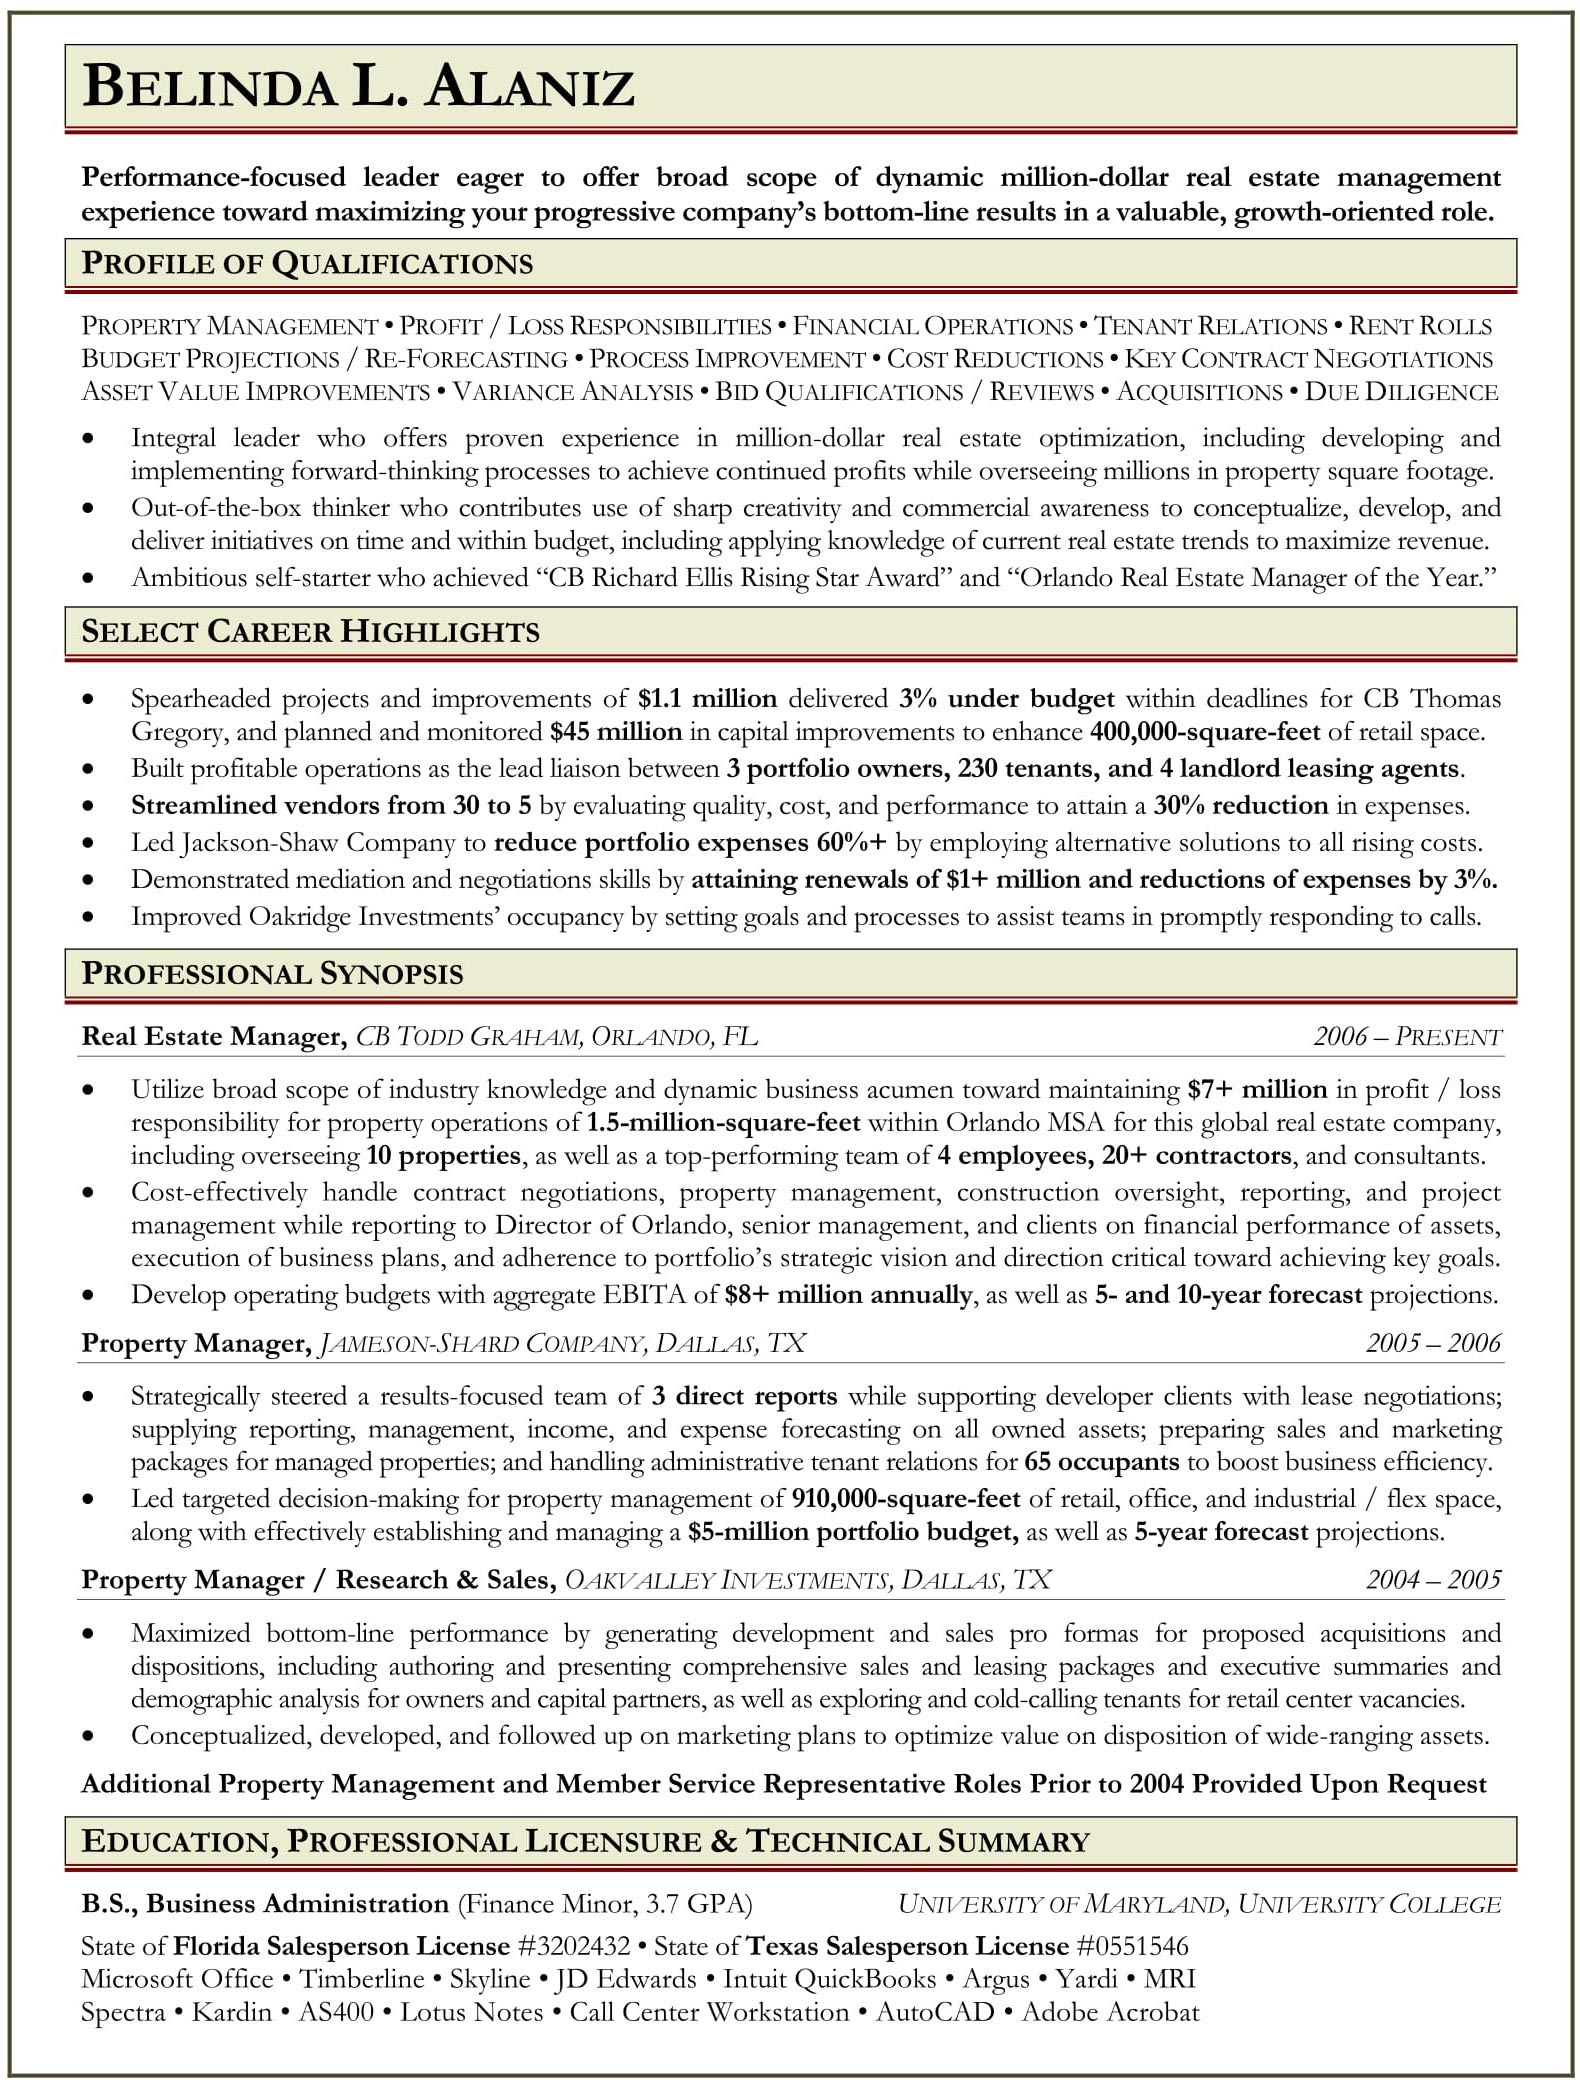 sample resume for property manager ranked 1 - Professional Resume Writers Reviews